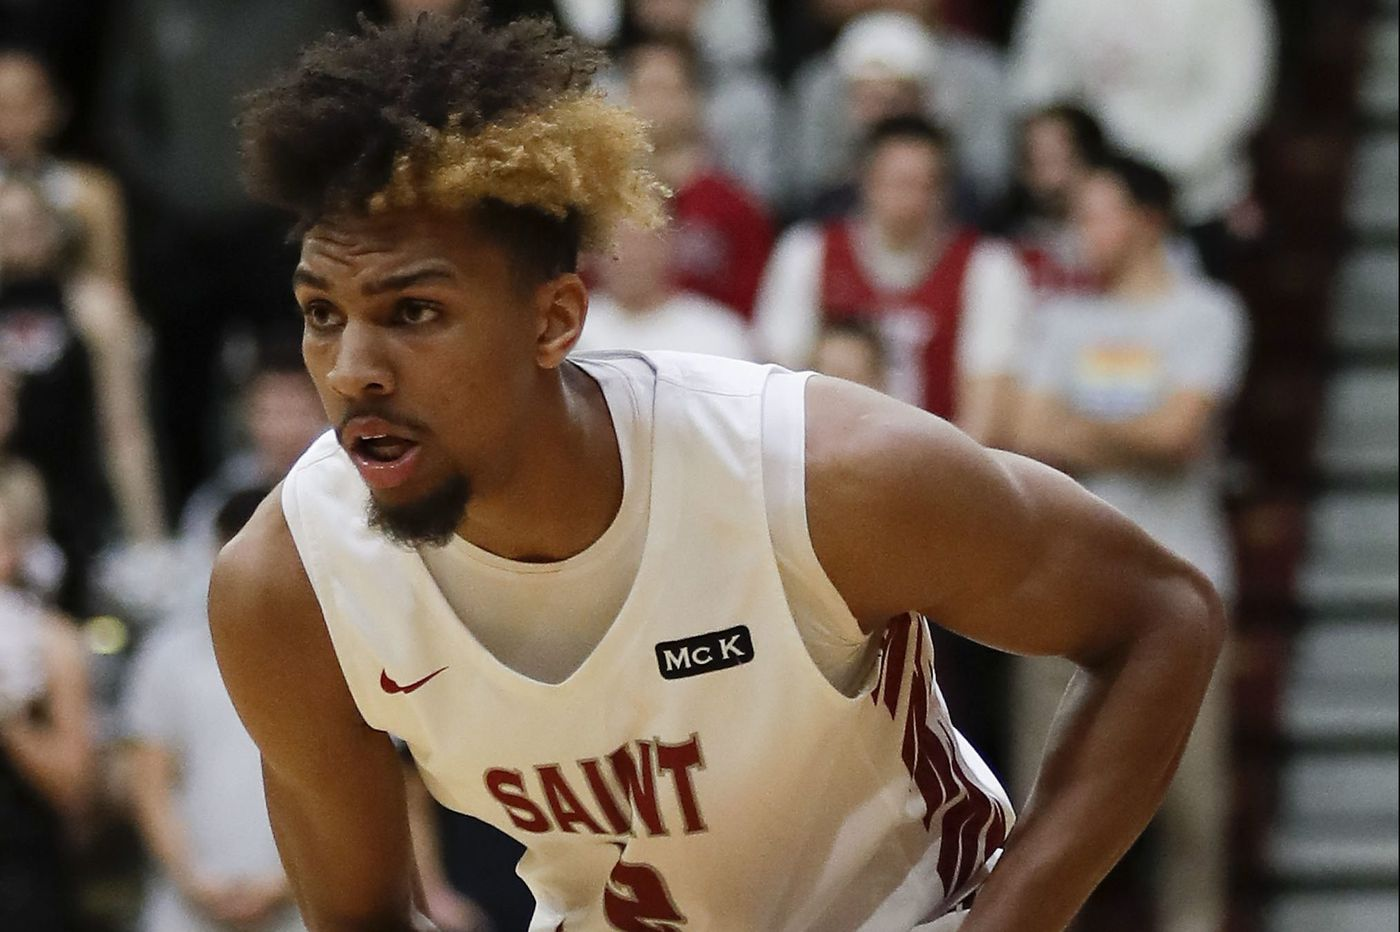 St. Joe's falls to William & Mary despite Charlie Brown Jr scoring career-high 37 points